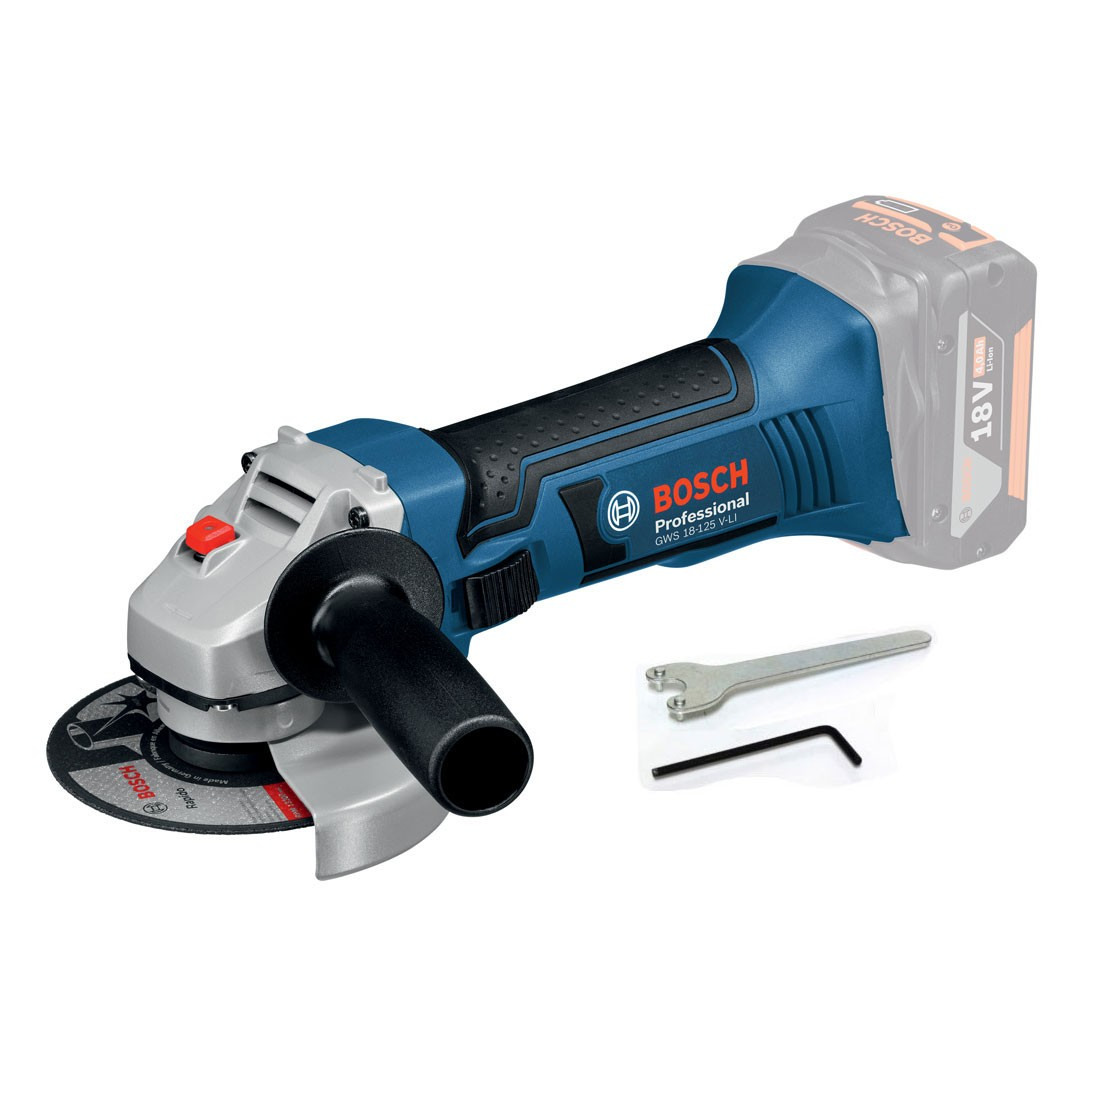 Bosch GWS 18-125 V-LI Angle Grinder Body Only in Carton 125mm / 5""